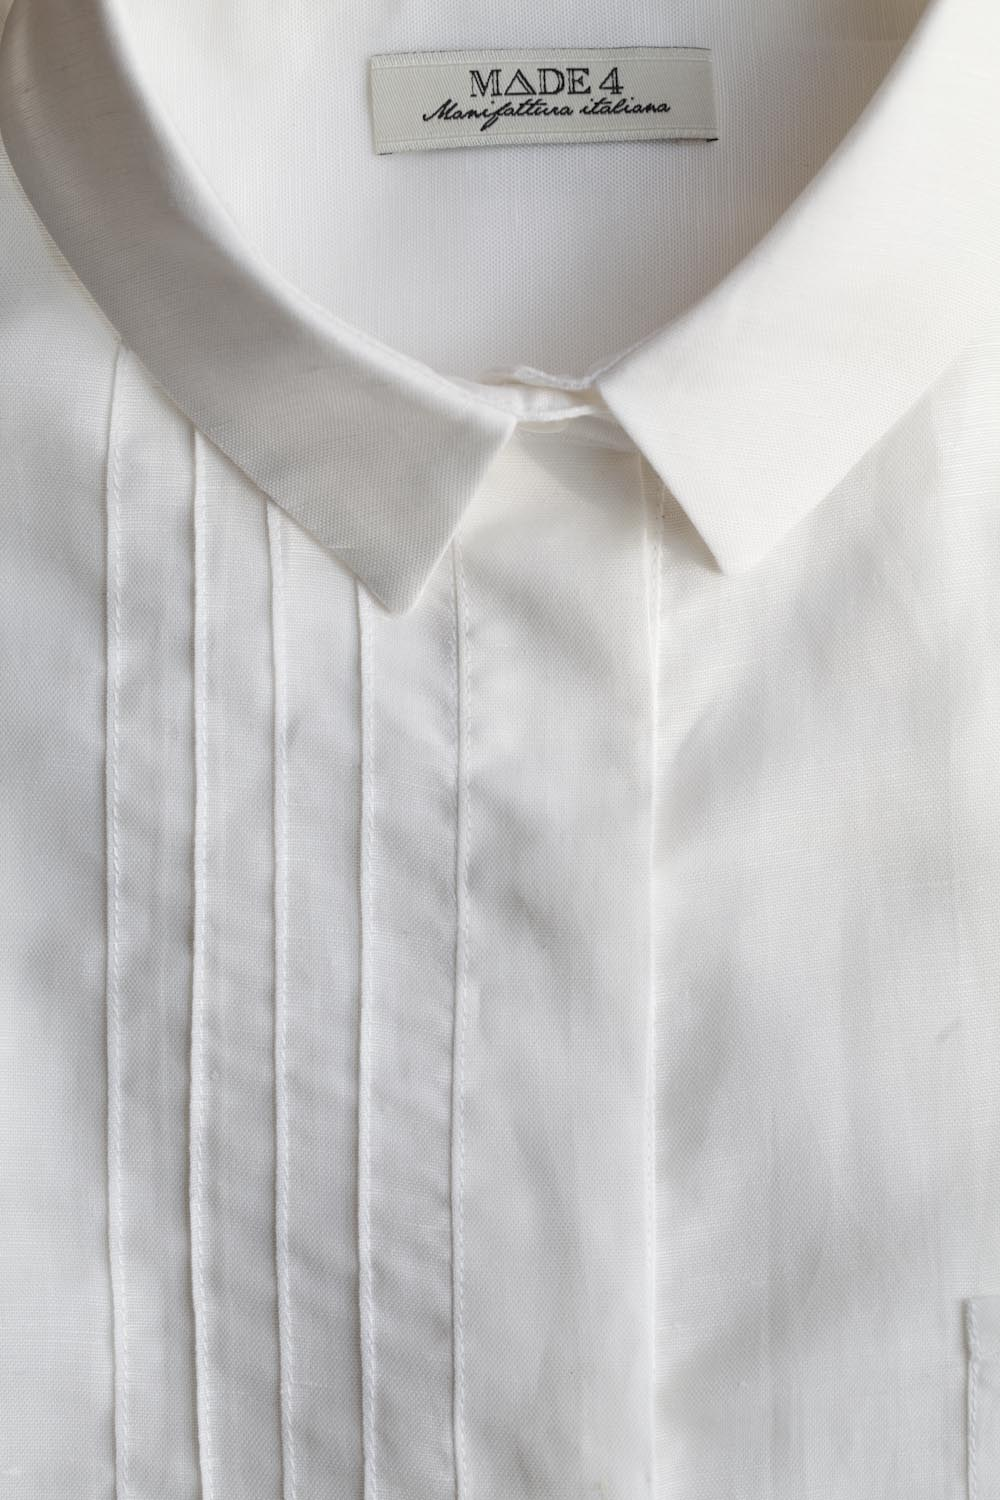 100% MADE IN ITALY SHIRTS FOR MEN AND LADIES